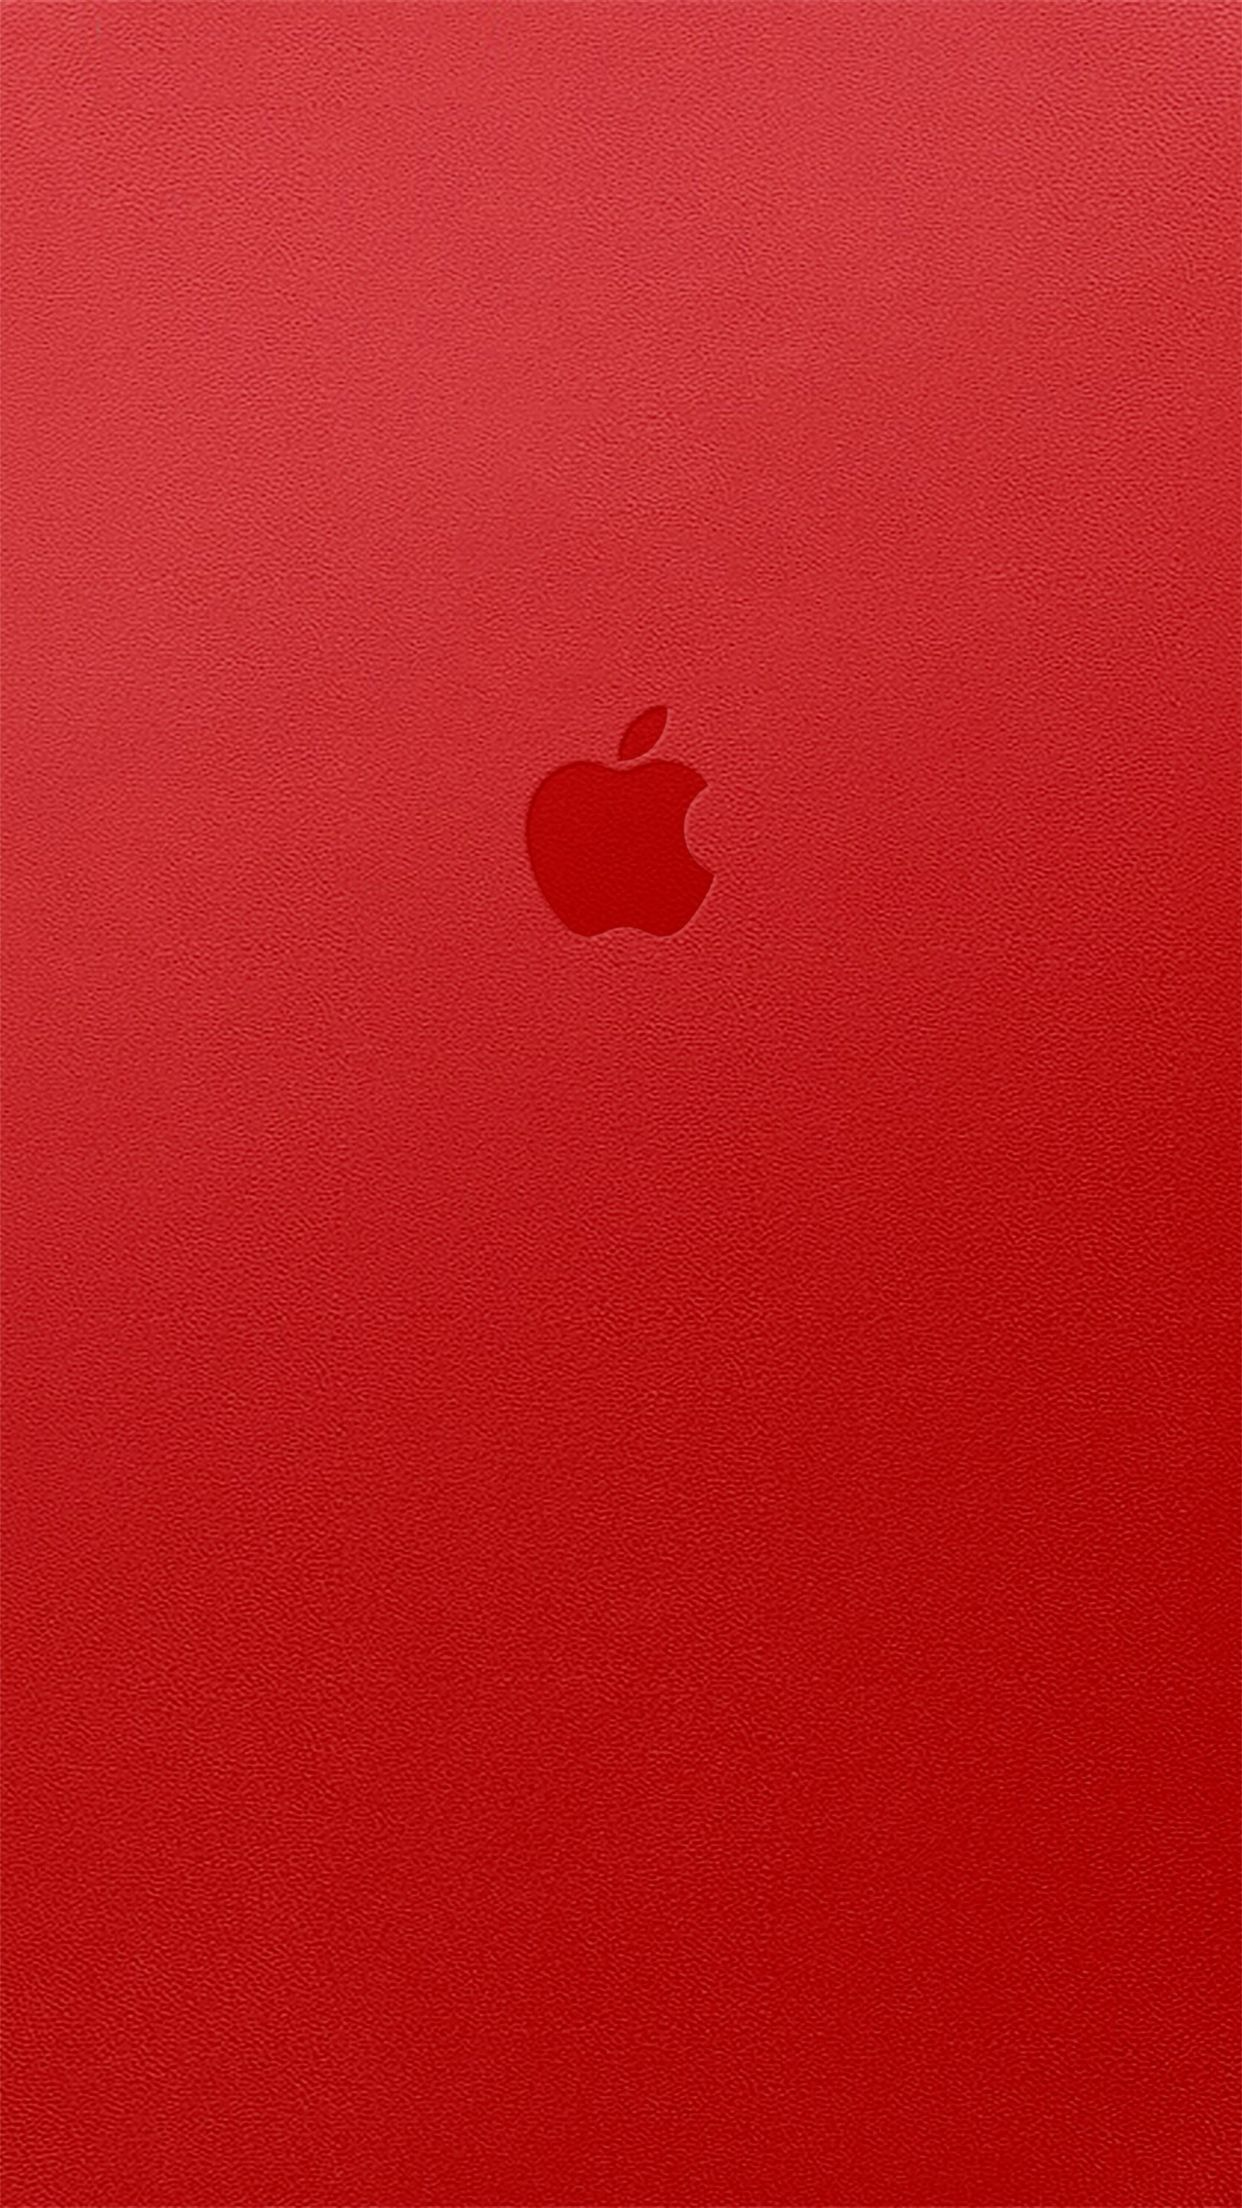 Apple iPhone 6s Plus wallpaper red Apple logo wallpaper